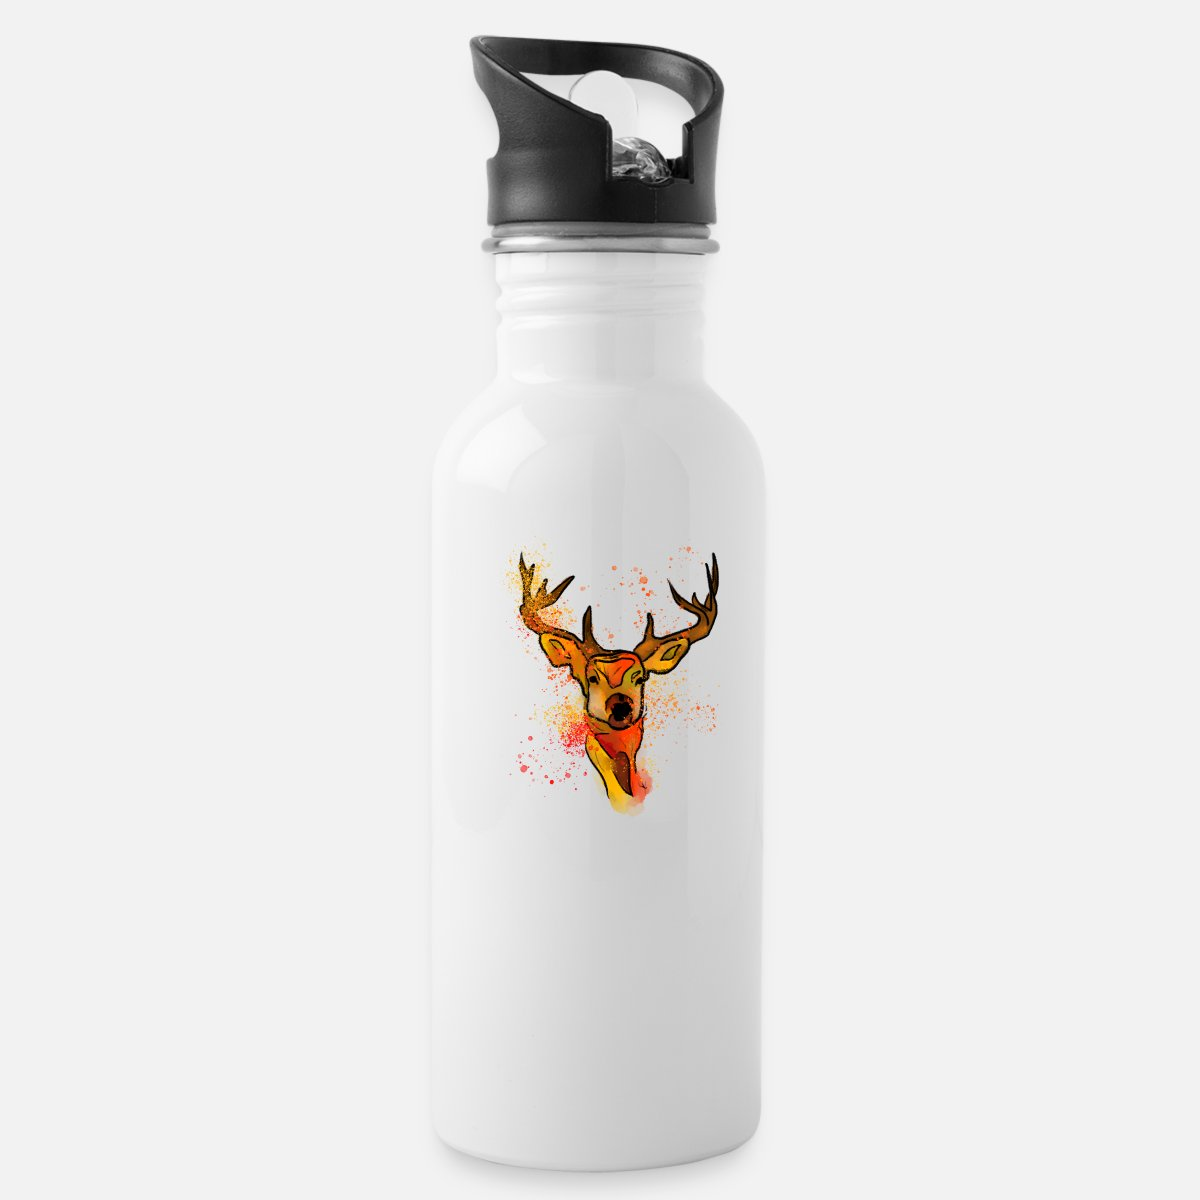 Cute hand draw deer with color splashes water bottle spreadshirt